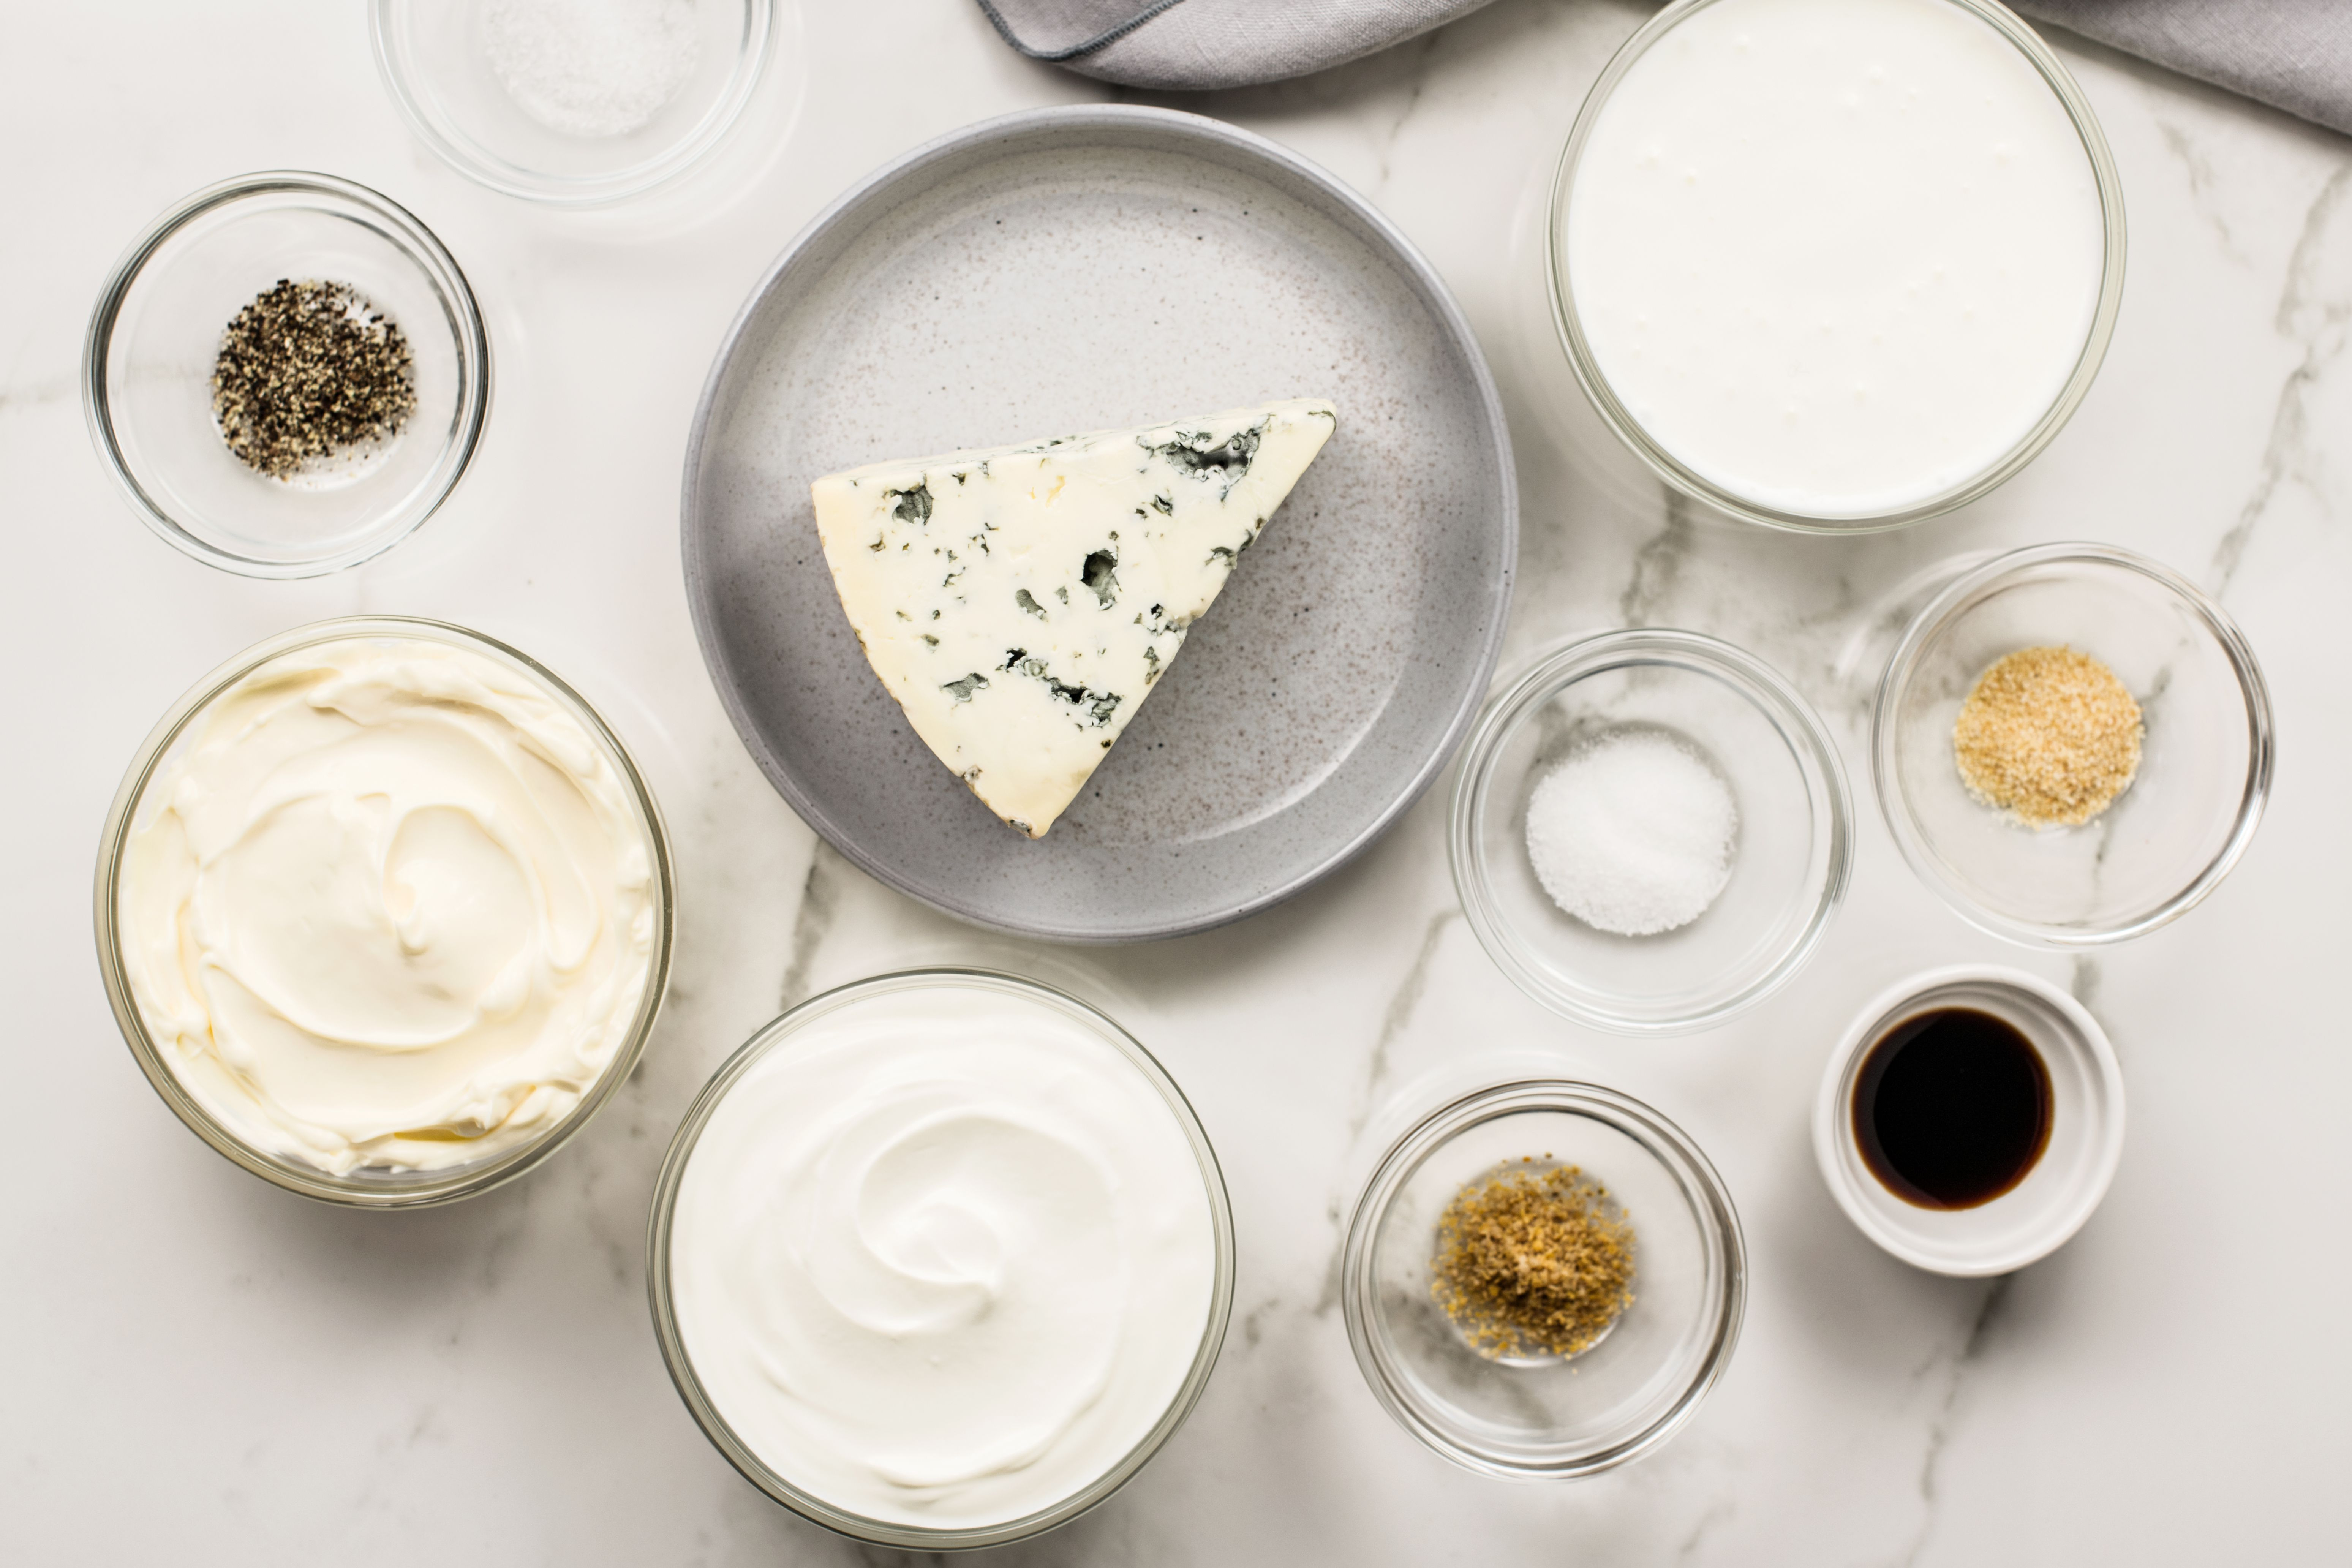 Ingredients for making blue cheese dressing